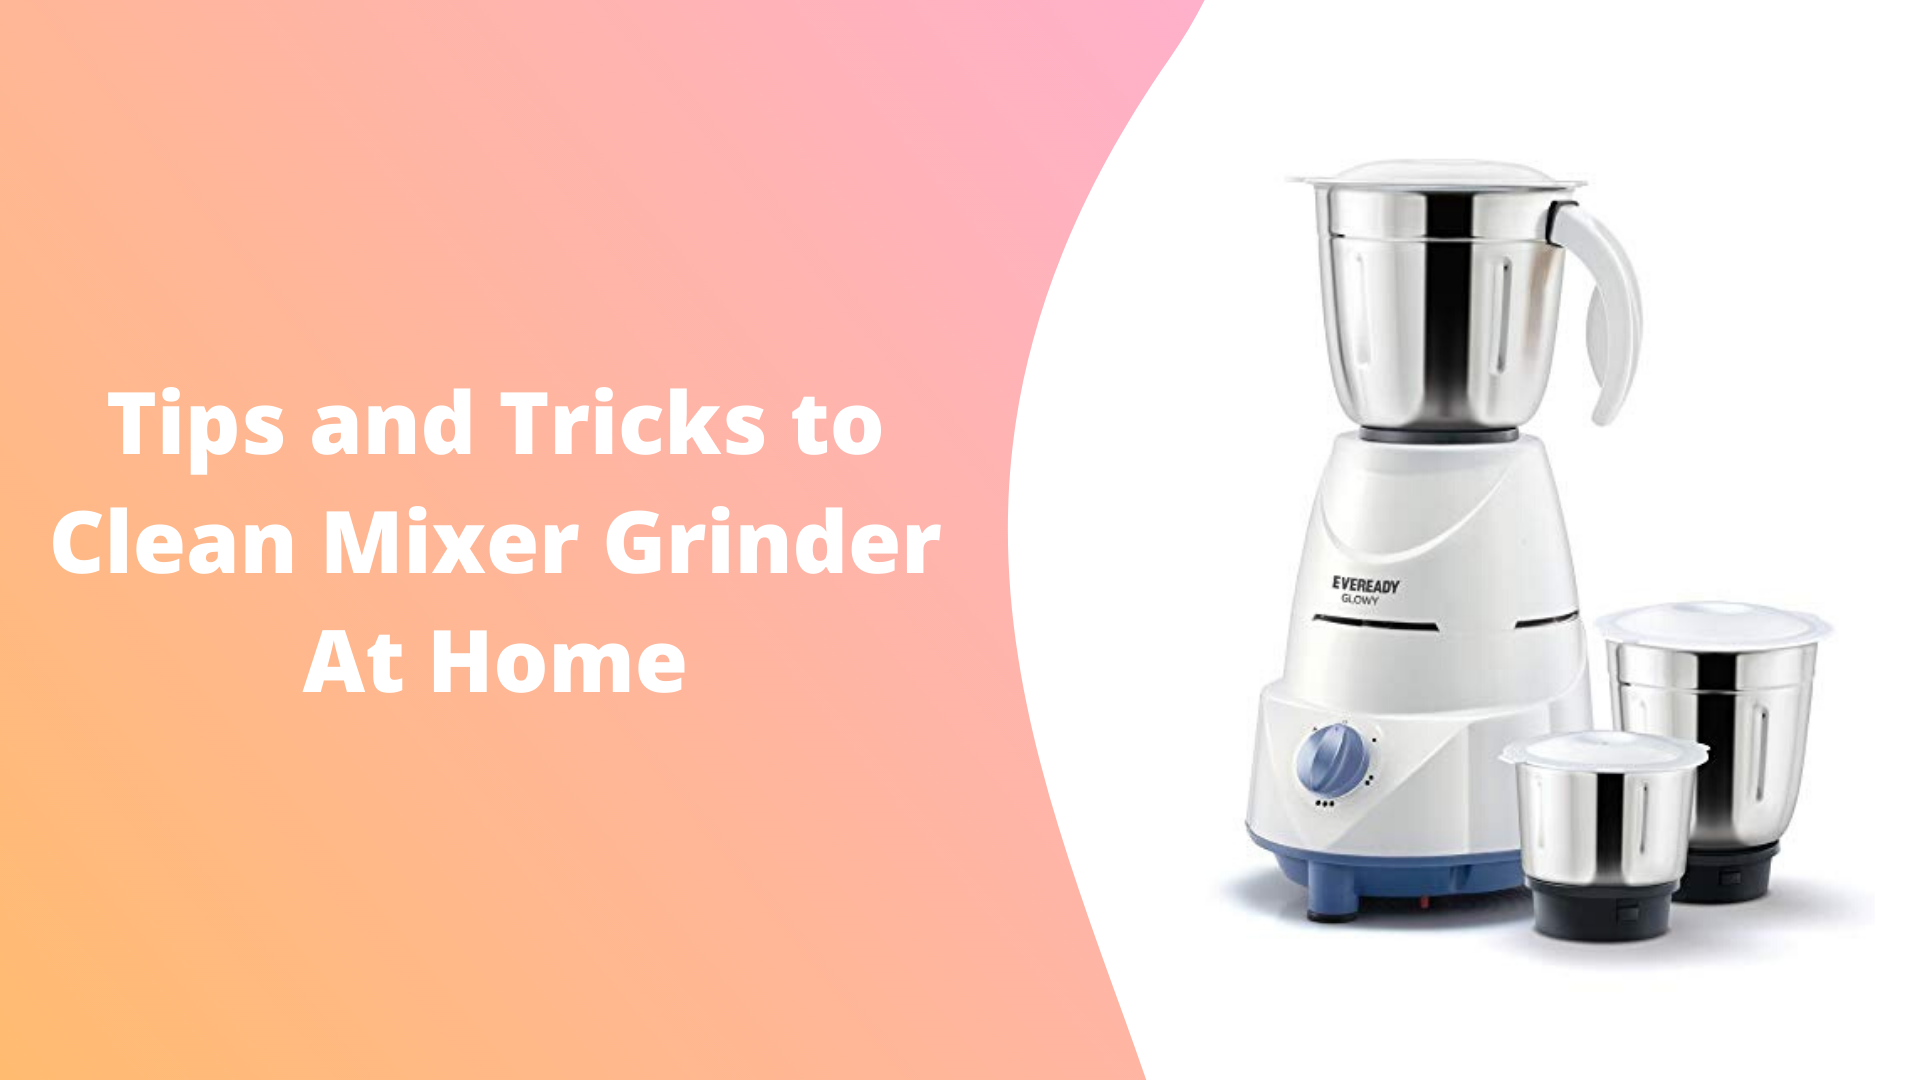 Tips and Tricks to Clean Mixer Grinder At Home